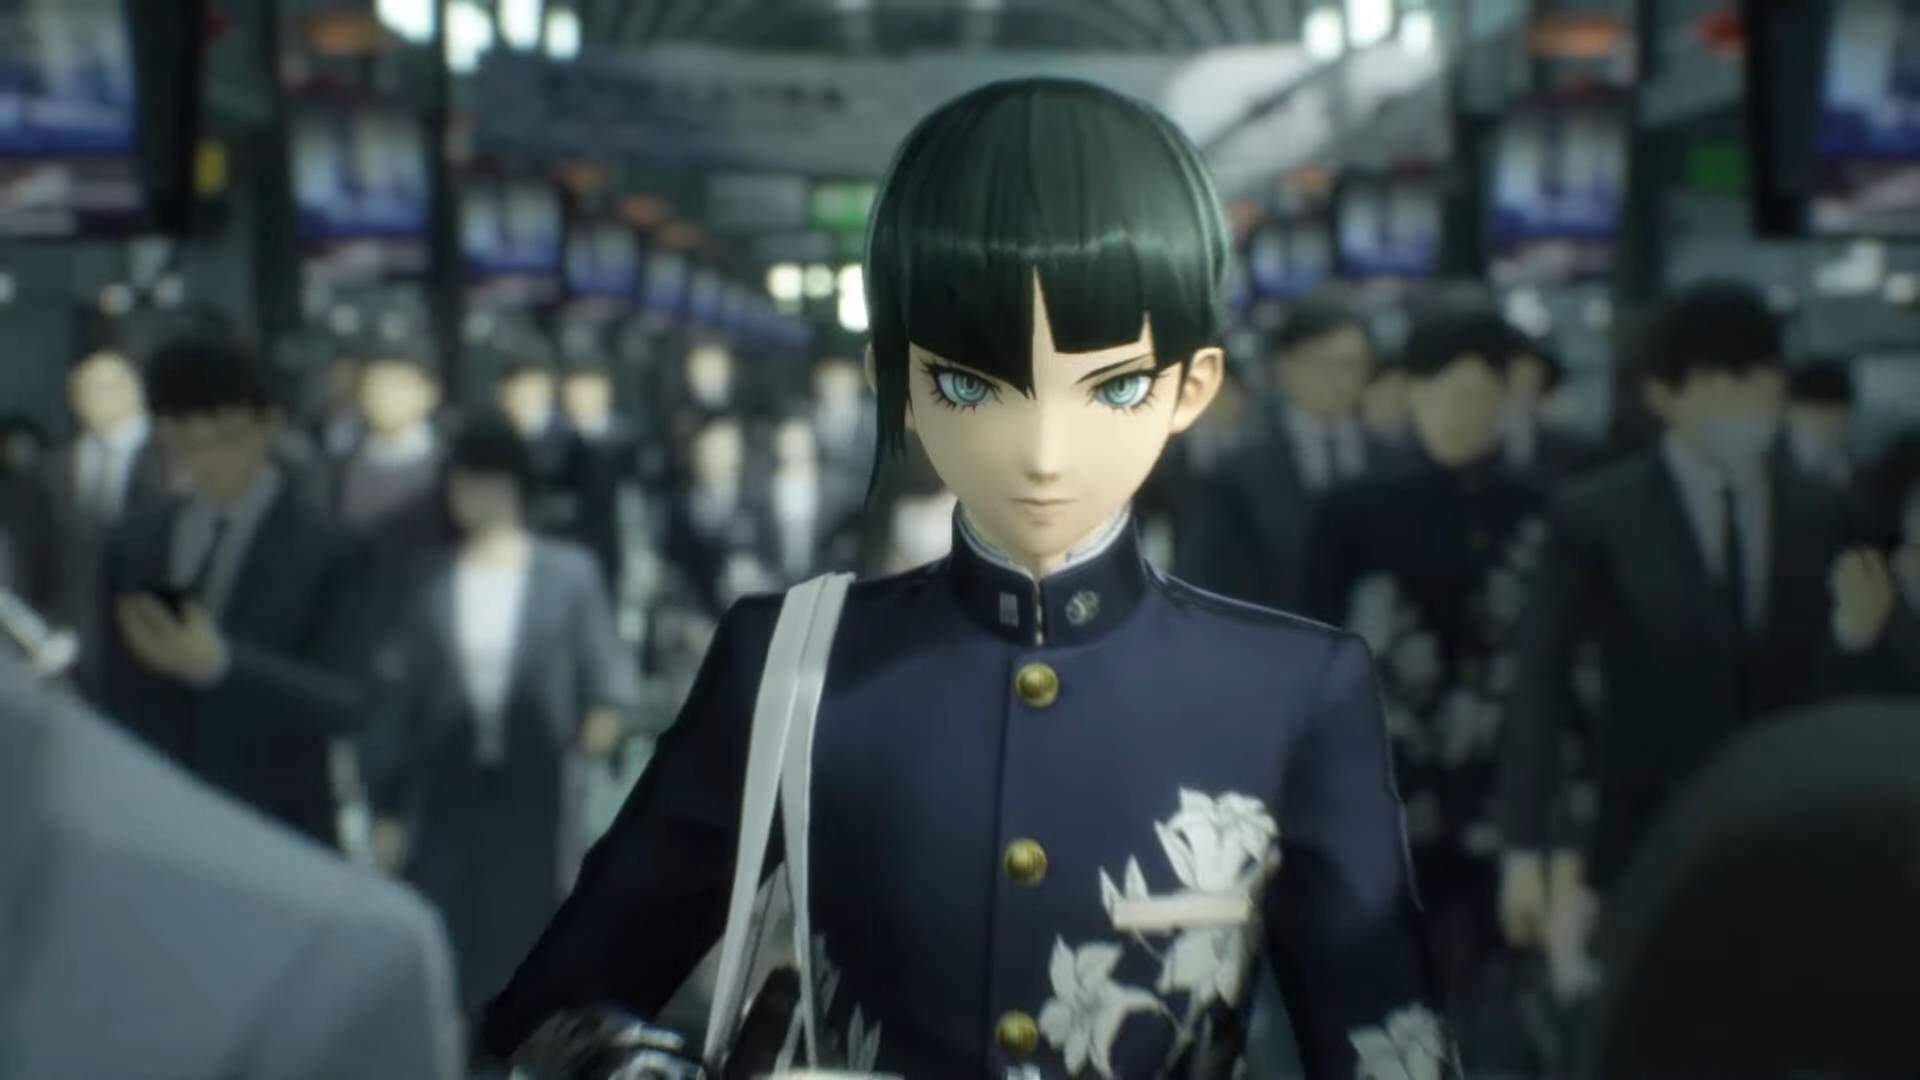 Shin Megami Tensei 5 Finally Resurfaces With a 2021 Release Window